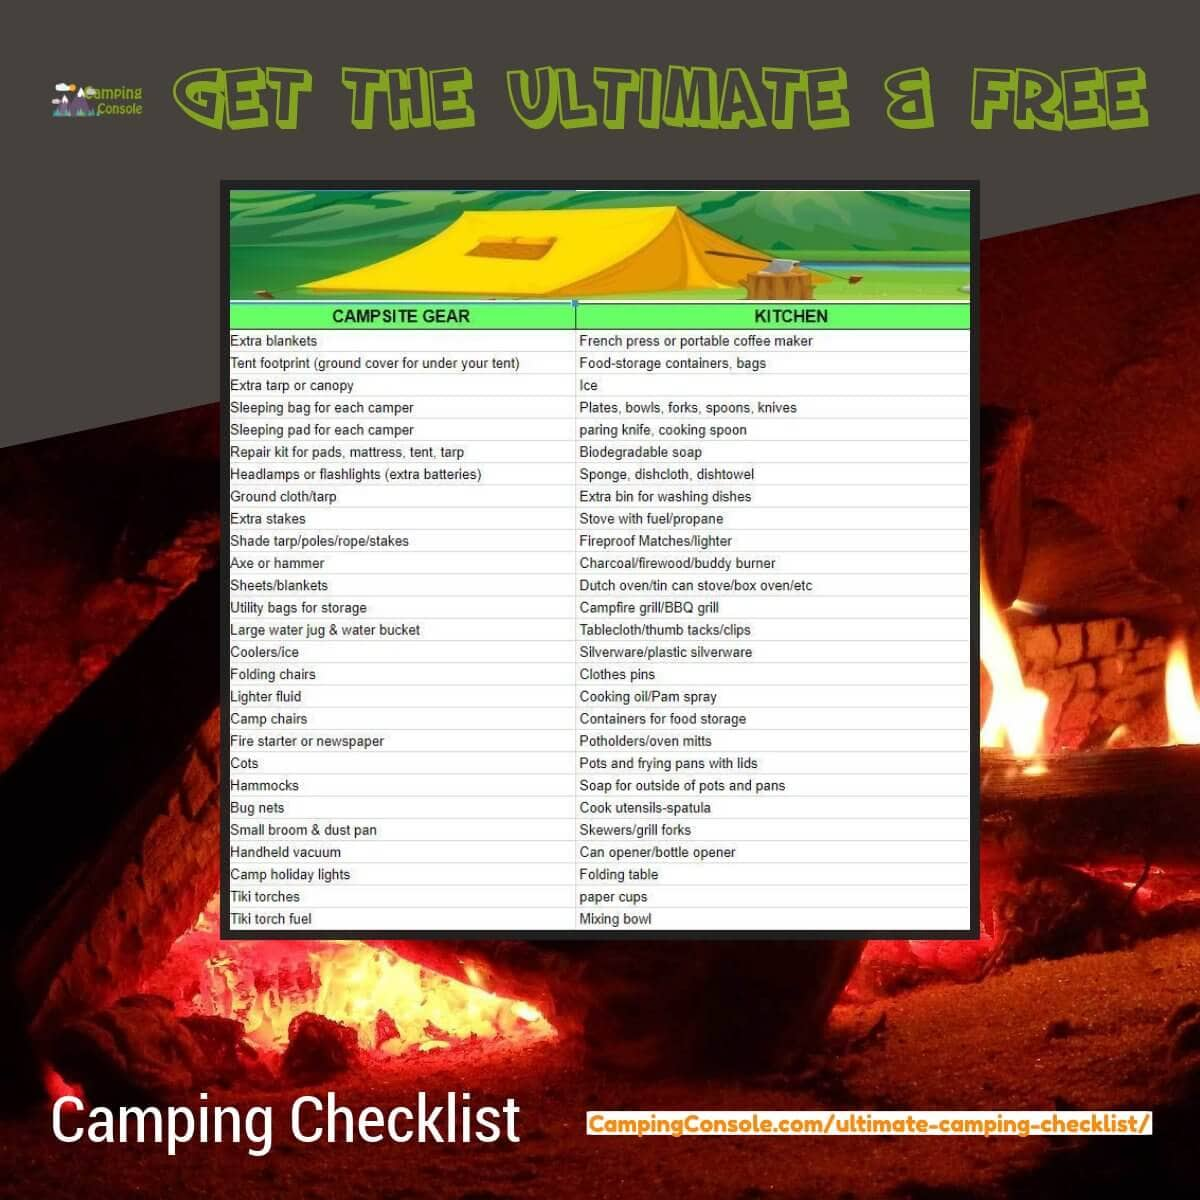 Ultimate checklist for camping - download